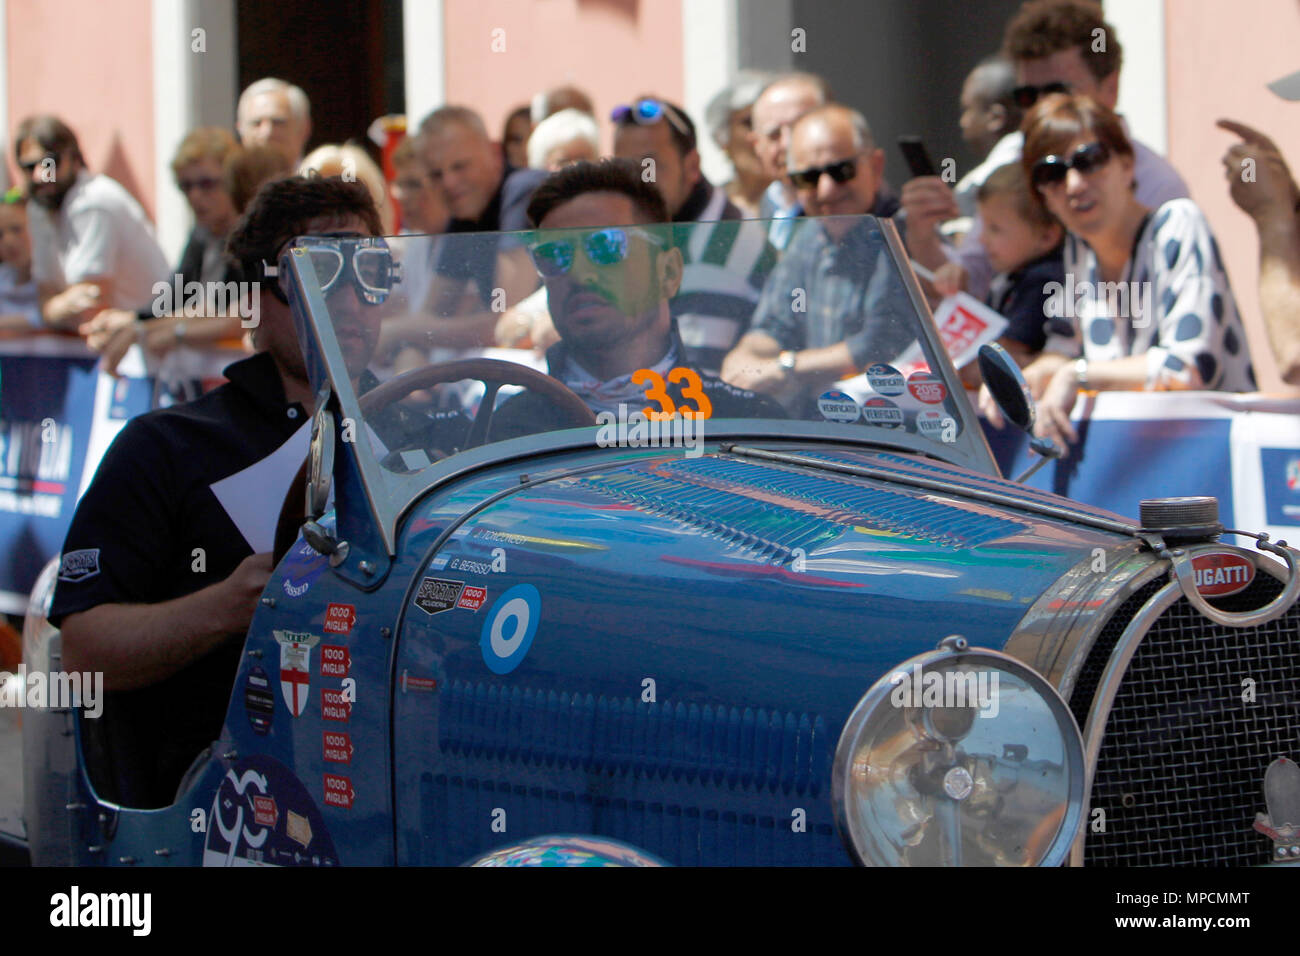 Ospitaletto, Italy. 21th, May 2017.  Crew composed by Juan Tonconogy and Guillermo Berisso from Argentina with their model car, BUGATTI Type 40 1927 - Stock Photo